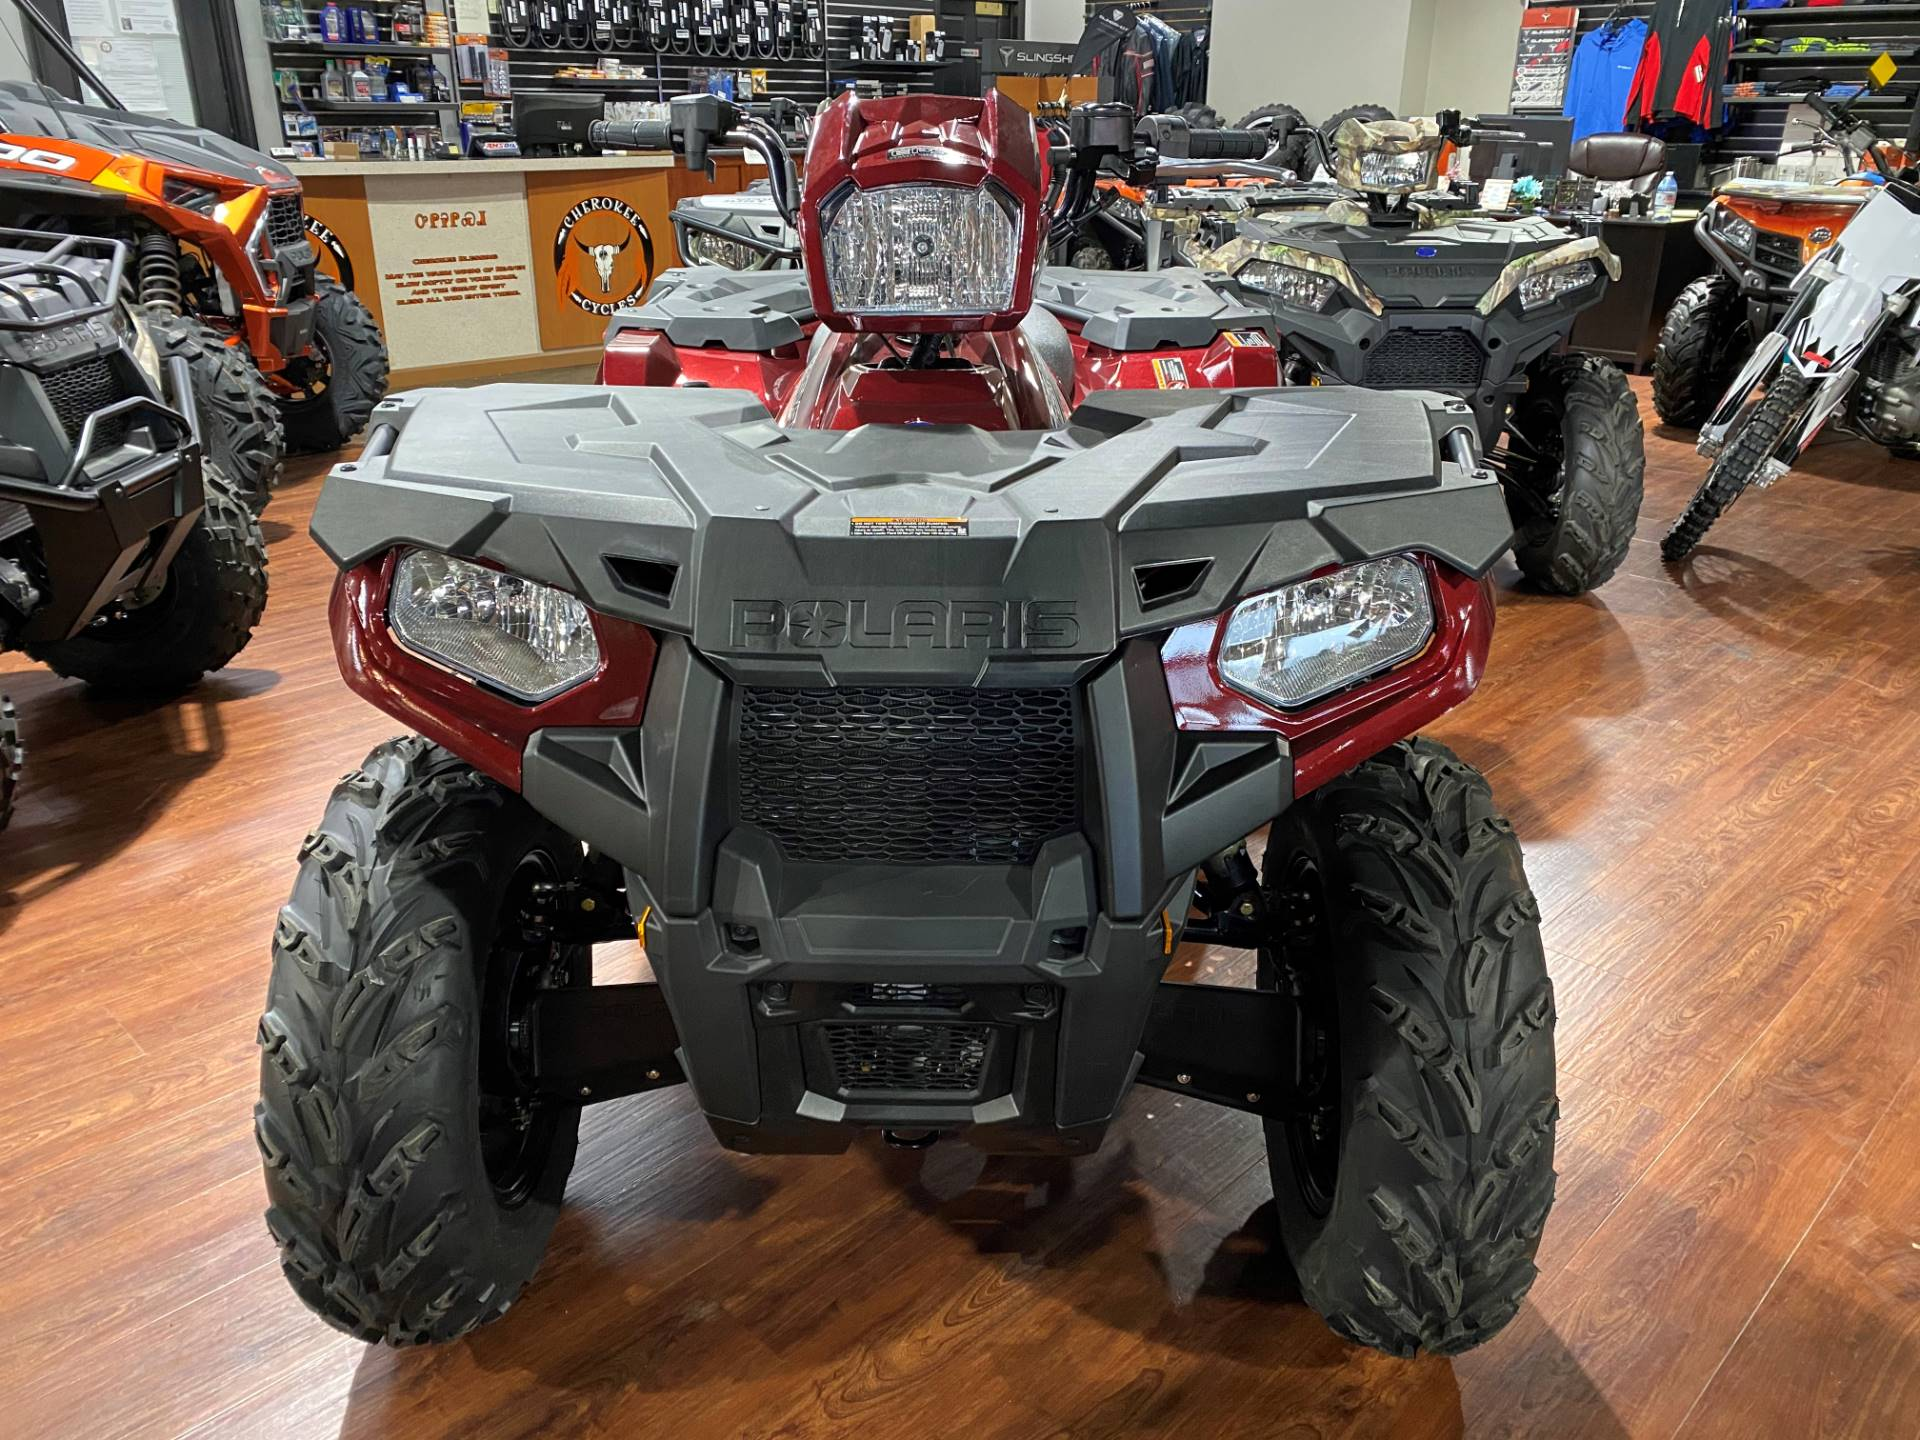 2019 Polaris Sportsman 570 SP - Photo 5